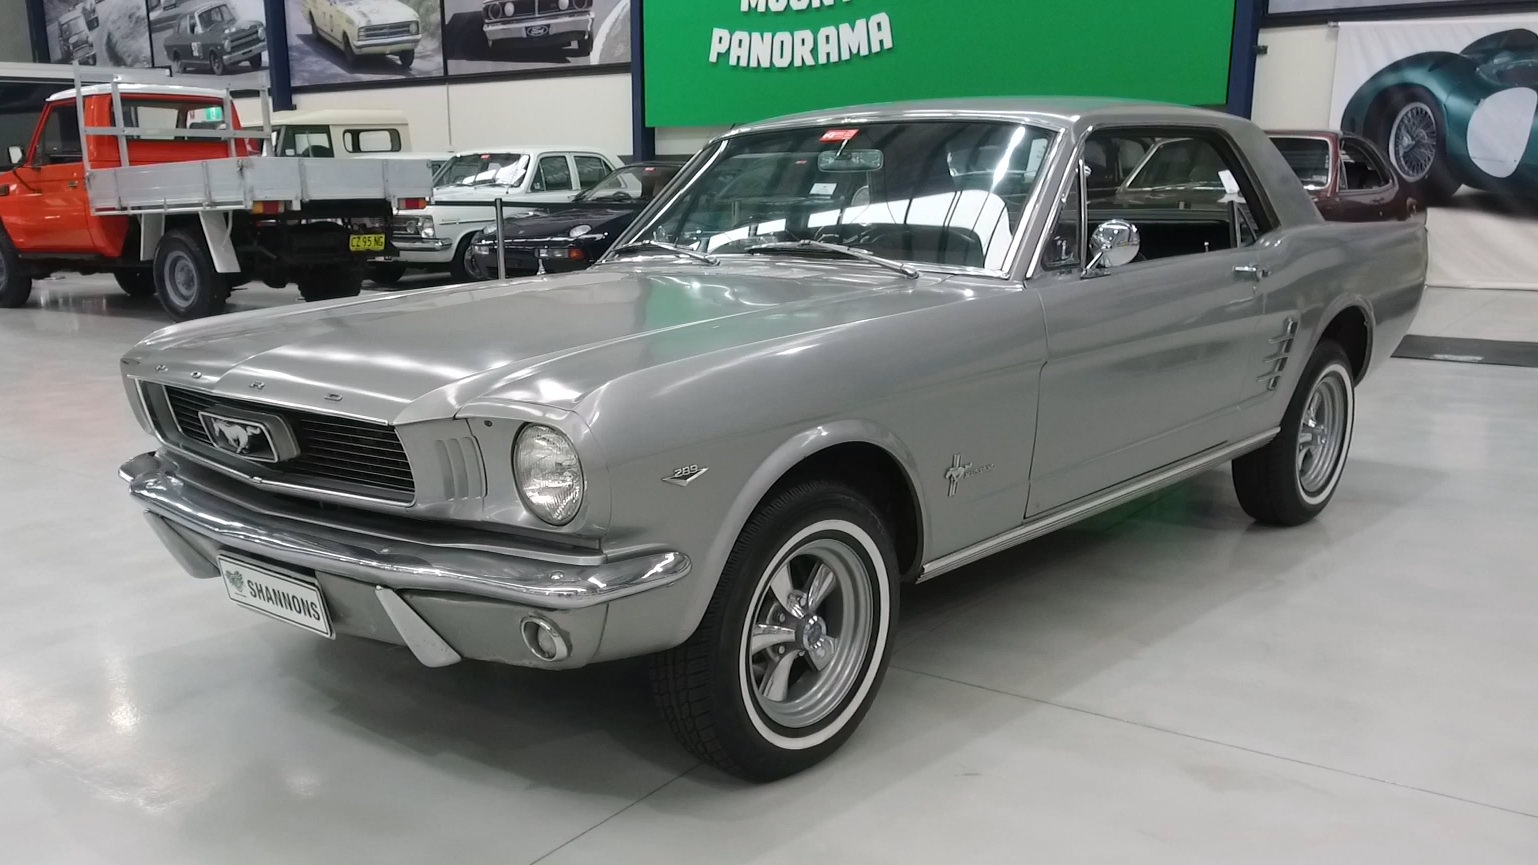 1966 Ford Mustang 289 V8 Coupe (RHD) - 2021 Shannons Winter Timed Online Auction